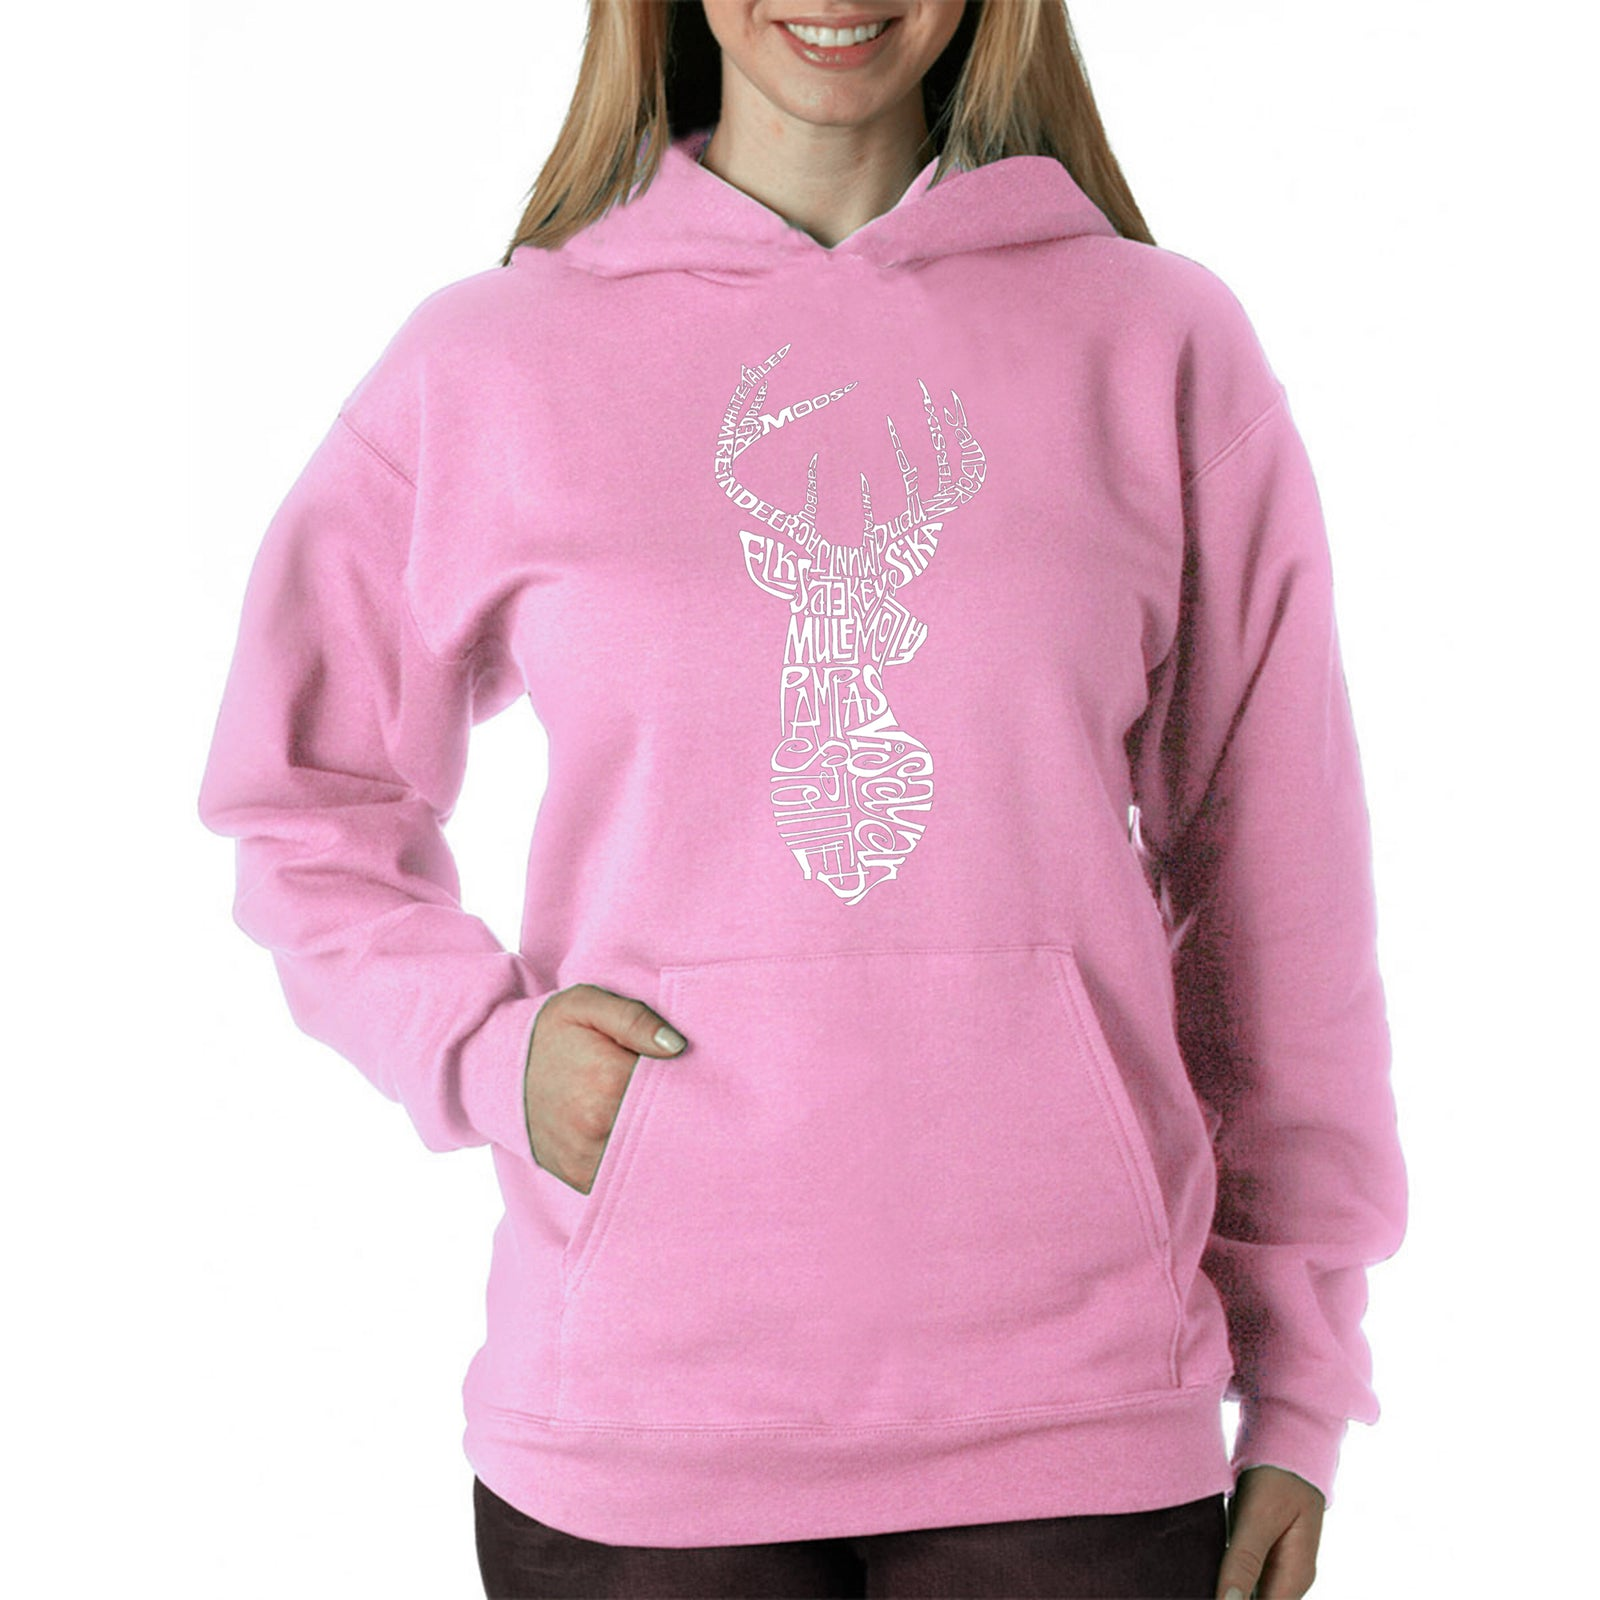 Women's Hooded Sweatshirt - Types of Deer